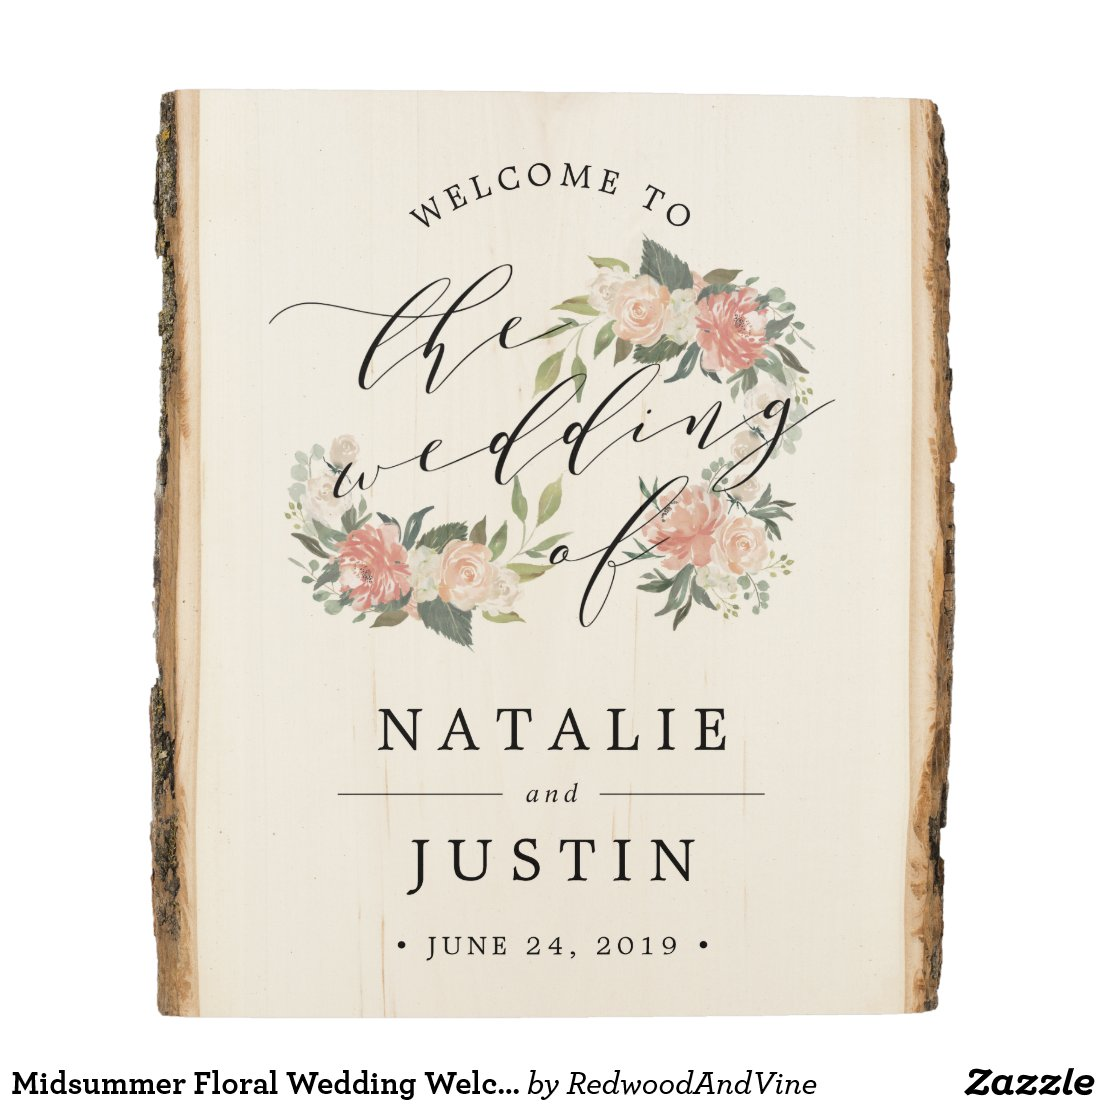 Midsummer Floral Wedding Welcome Wood Panel